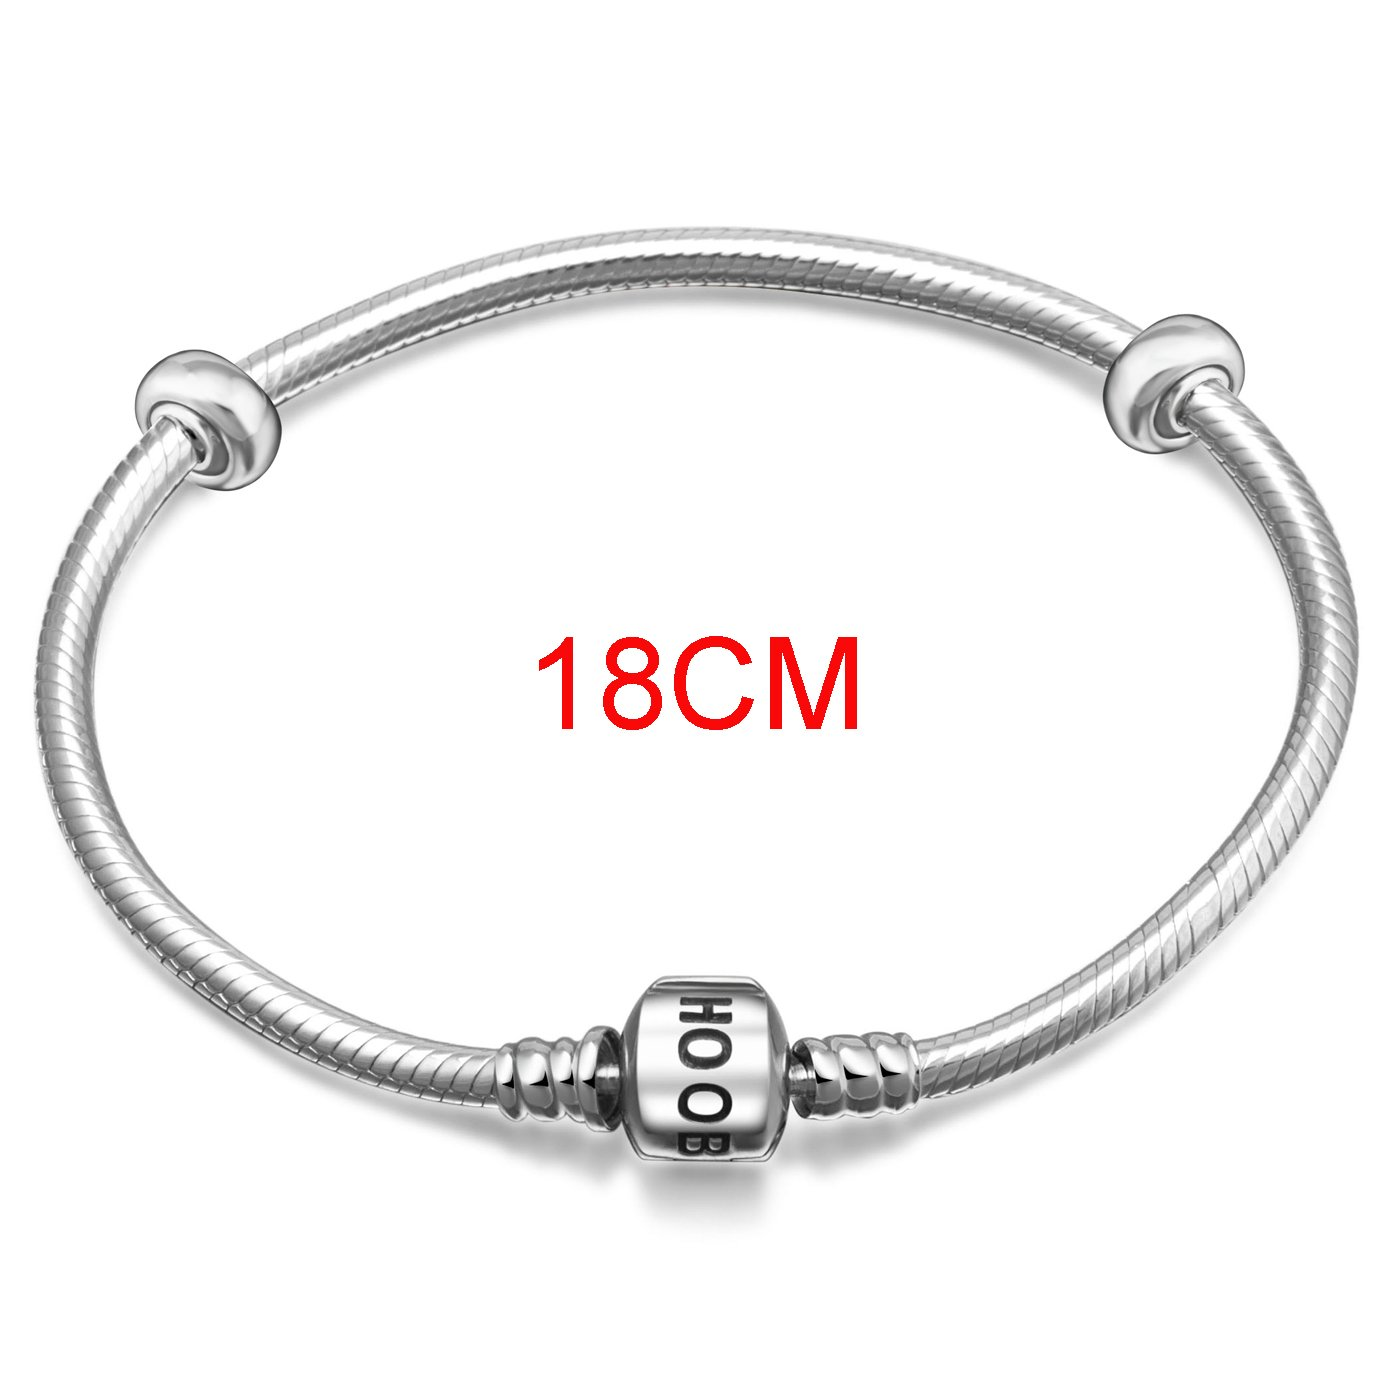 7.1Inchs-18cm Hoobeads 925 Sterling Silver Snake Chain Bracelet with 2 Removable Stopper Beads Charms Bracelet